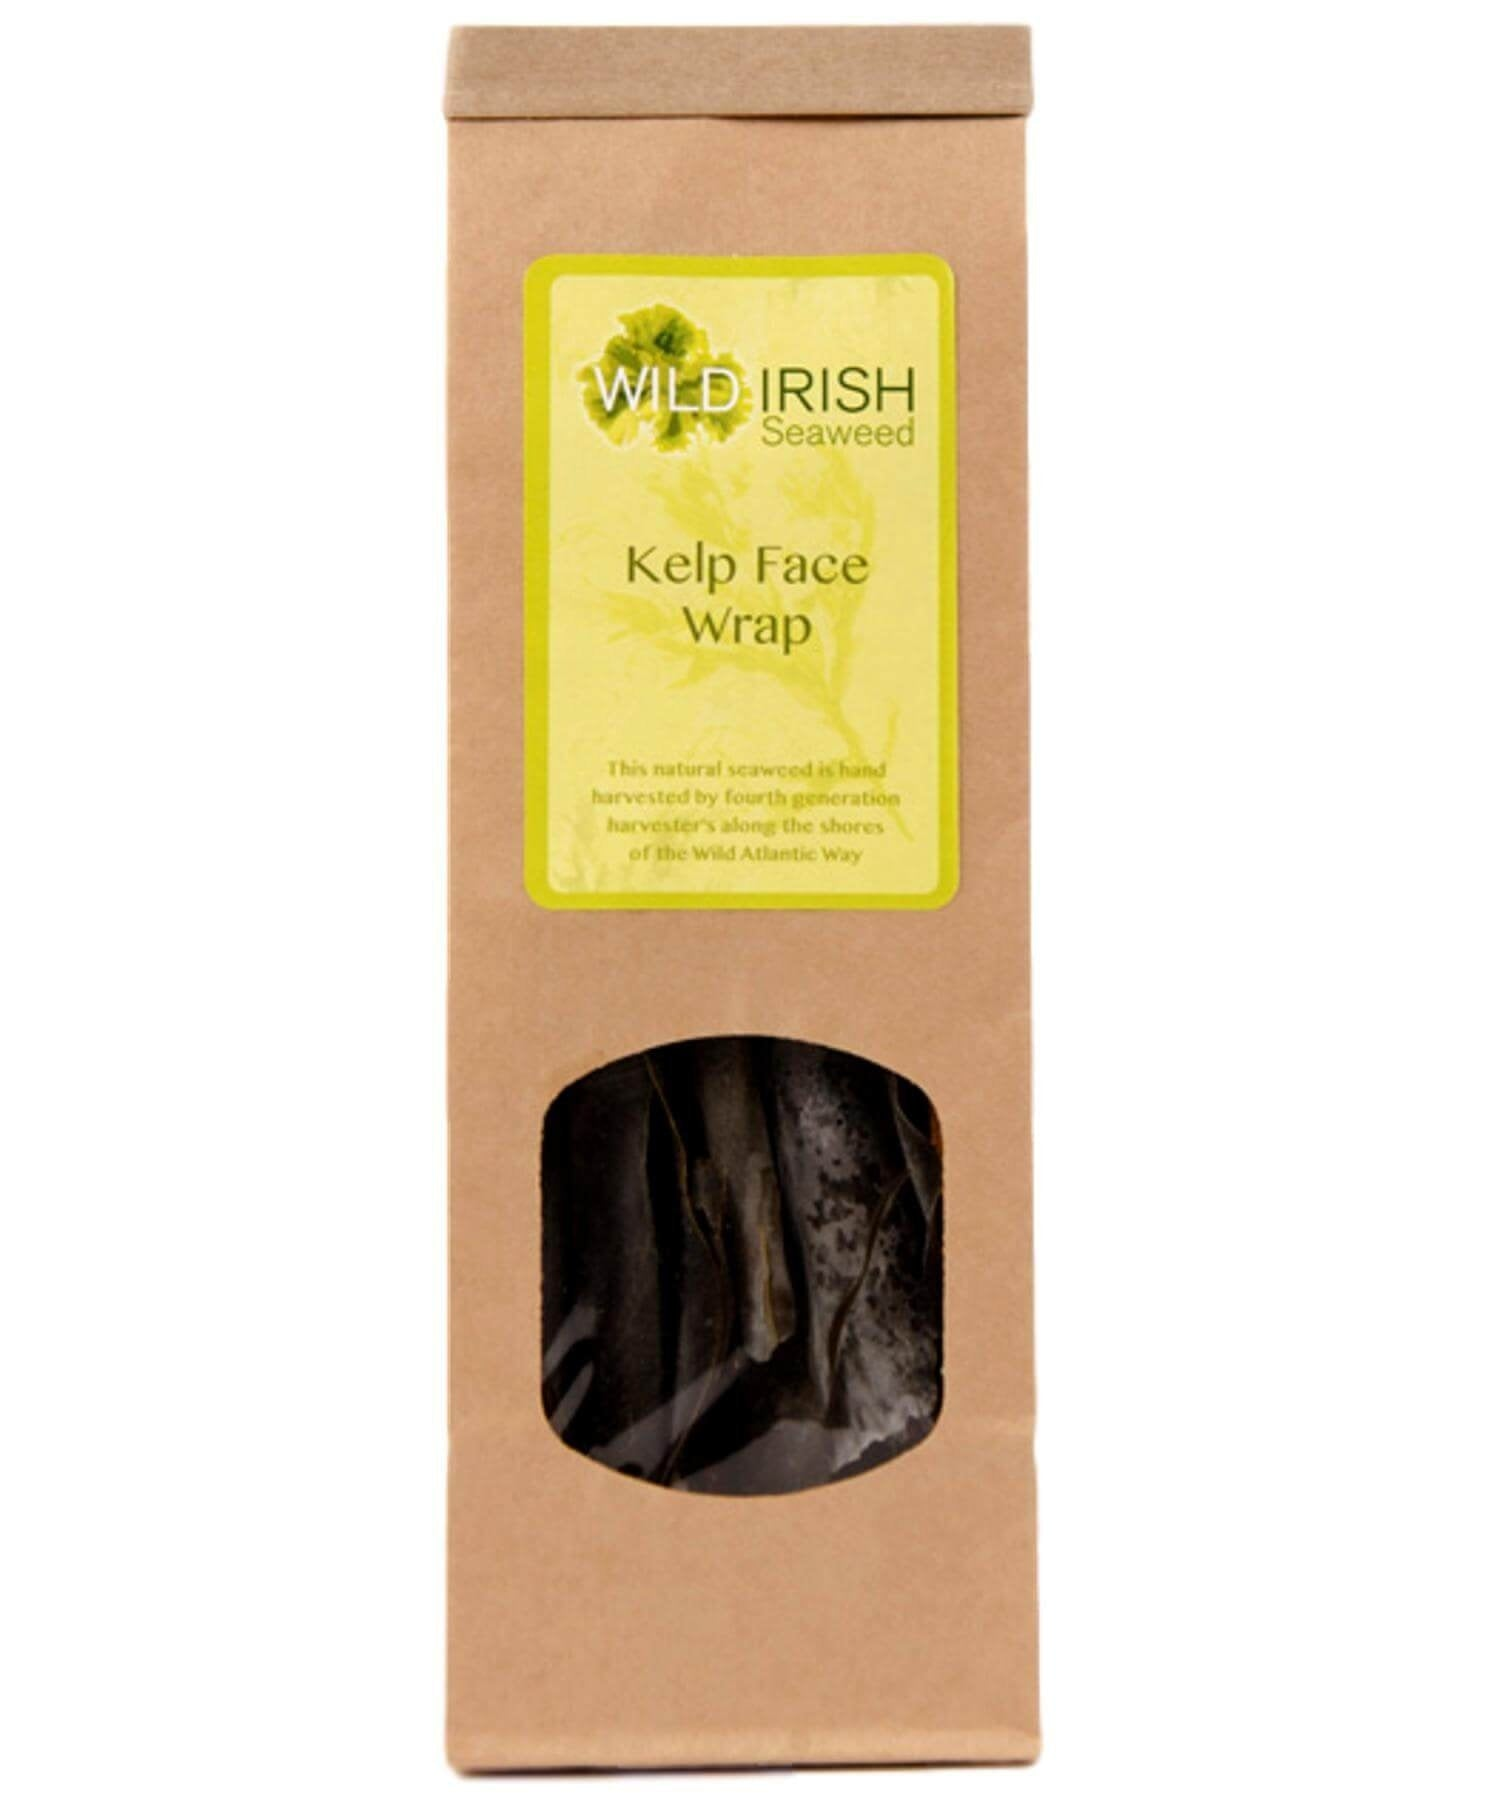 Kelp Face Wrap - [Wild Irish Seaweed] - Skincare & Beauty - Irish Gifts